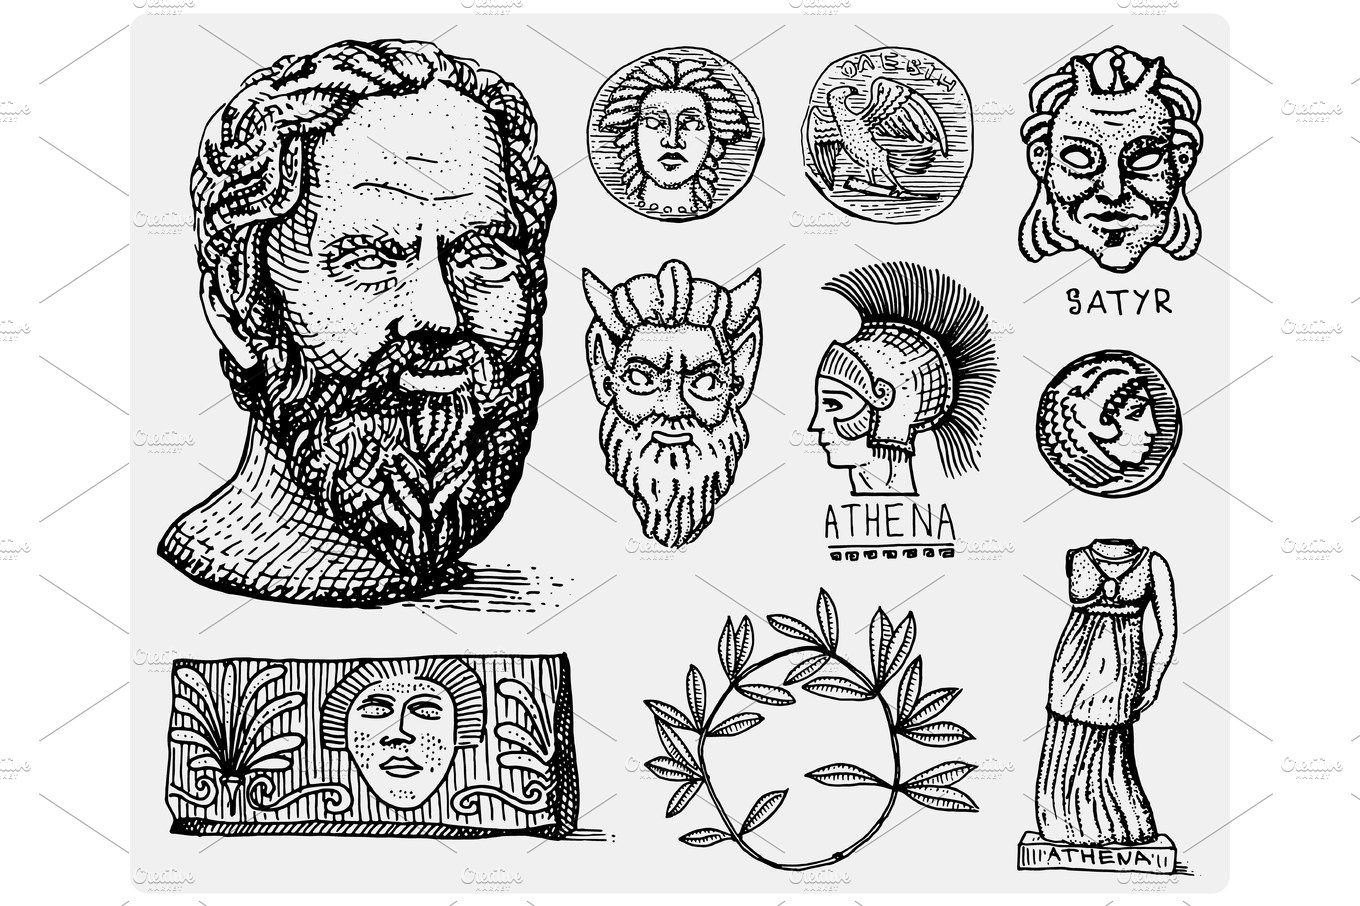 Ancient greece antique symbols socrates head laurel wreath ancient greece antique symbols socrates head laurel wreath athena statue and satyr face with coins vintage engraved hand drawn in sketch or wood cut biocorpaavc